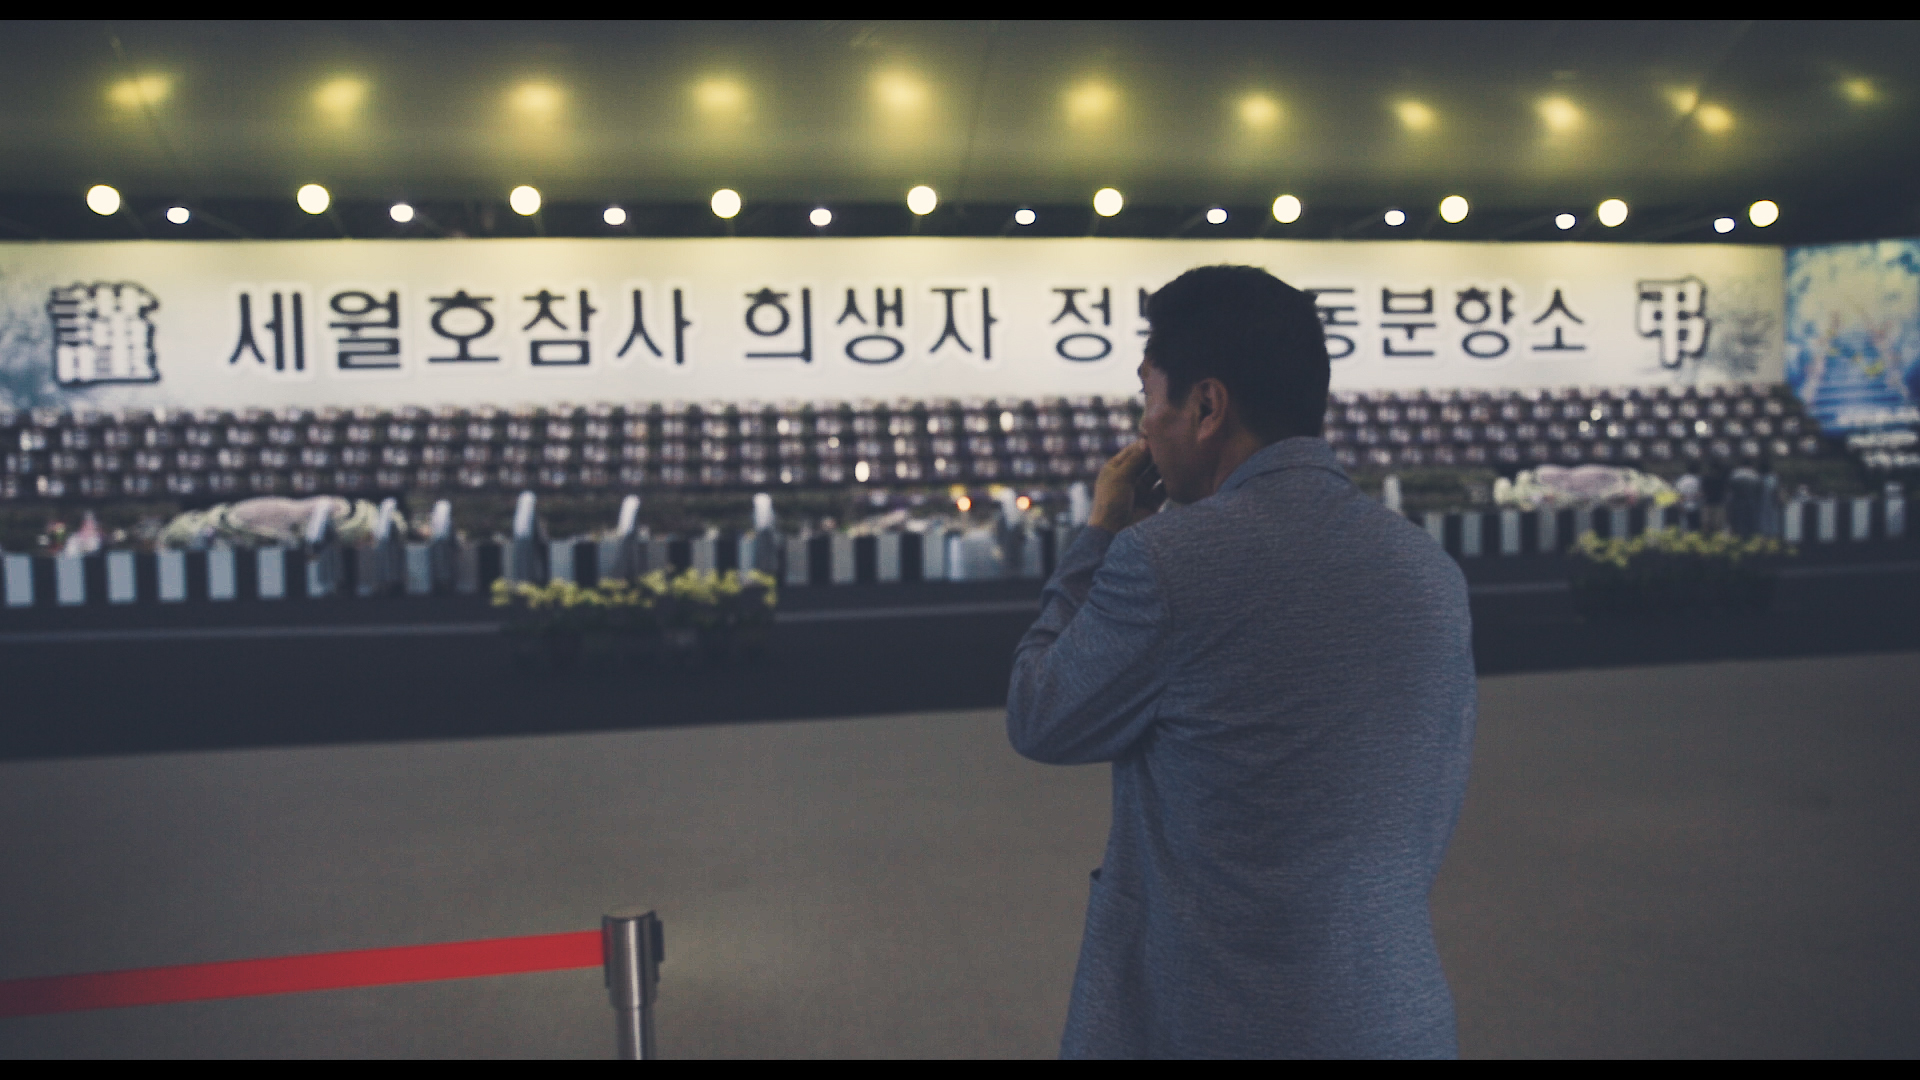 Taken from Sewol film, After the Sewol, 2017. Photograph by Neil P George © 2016